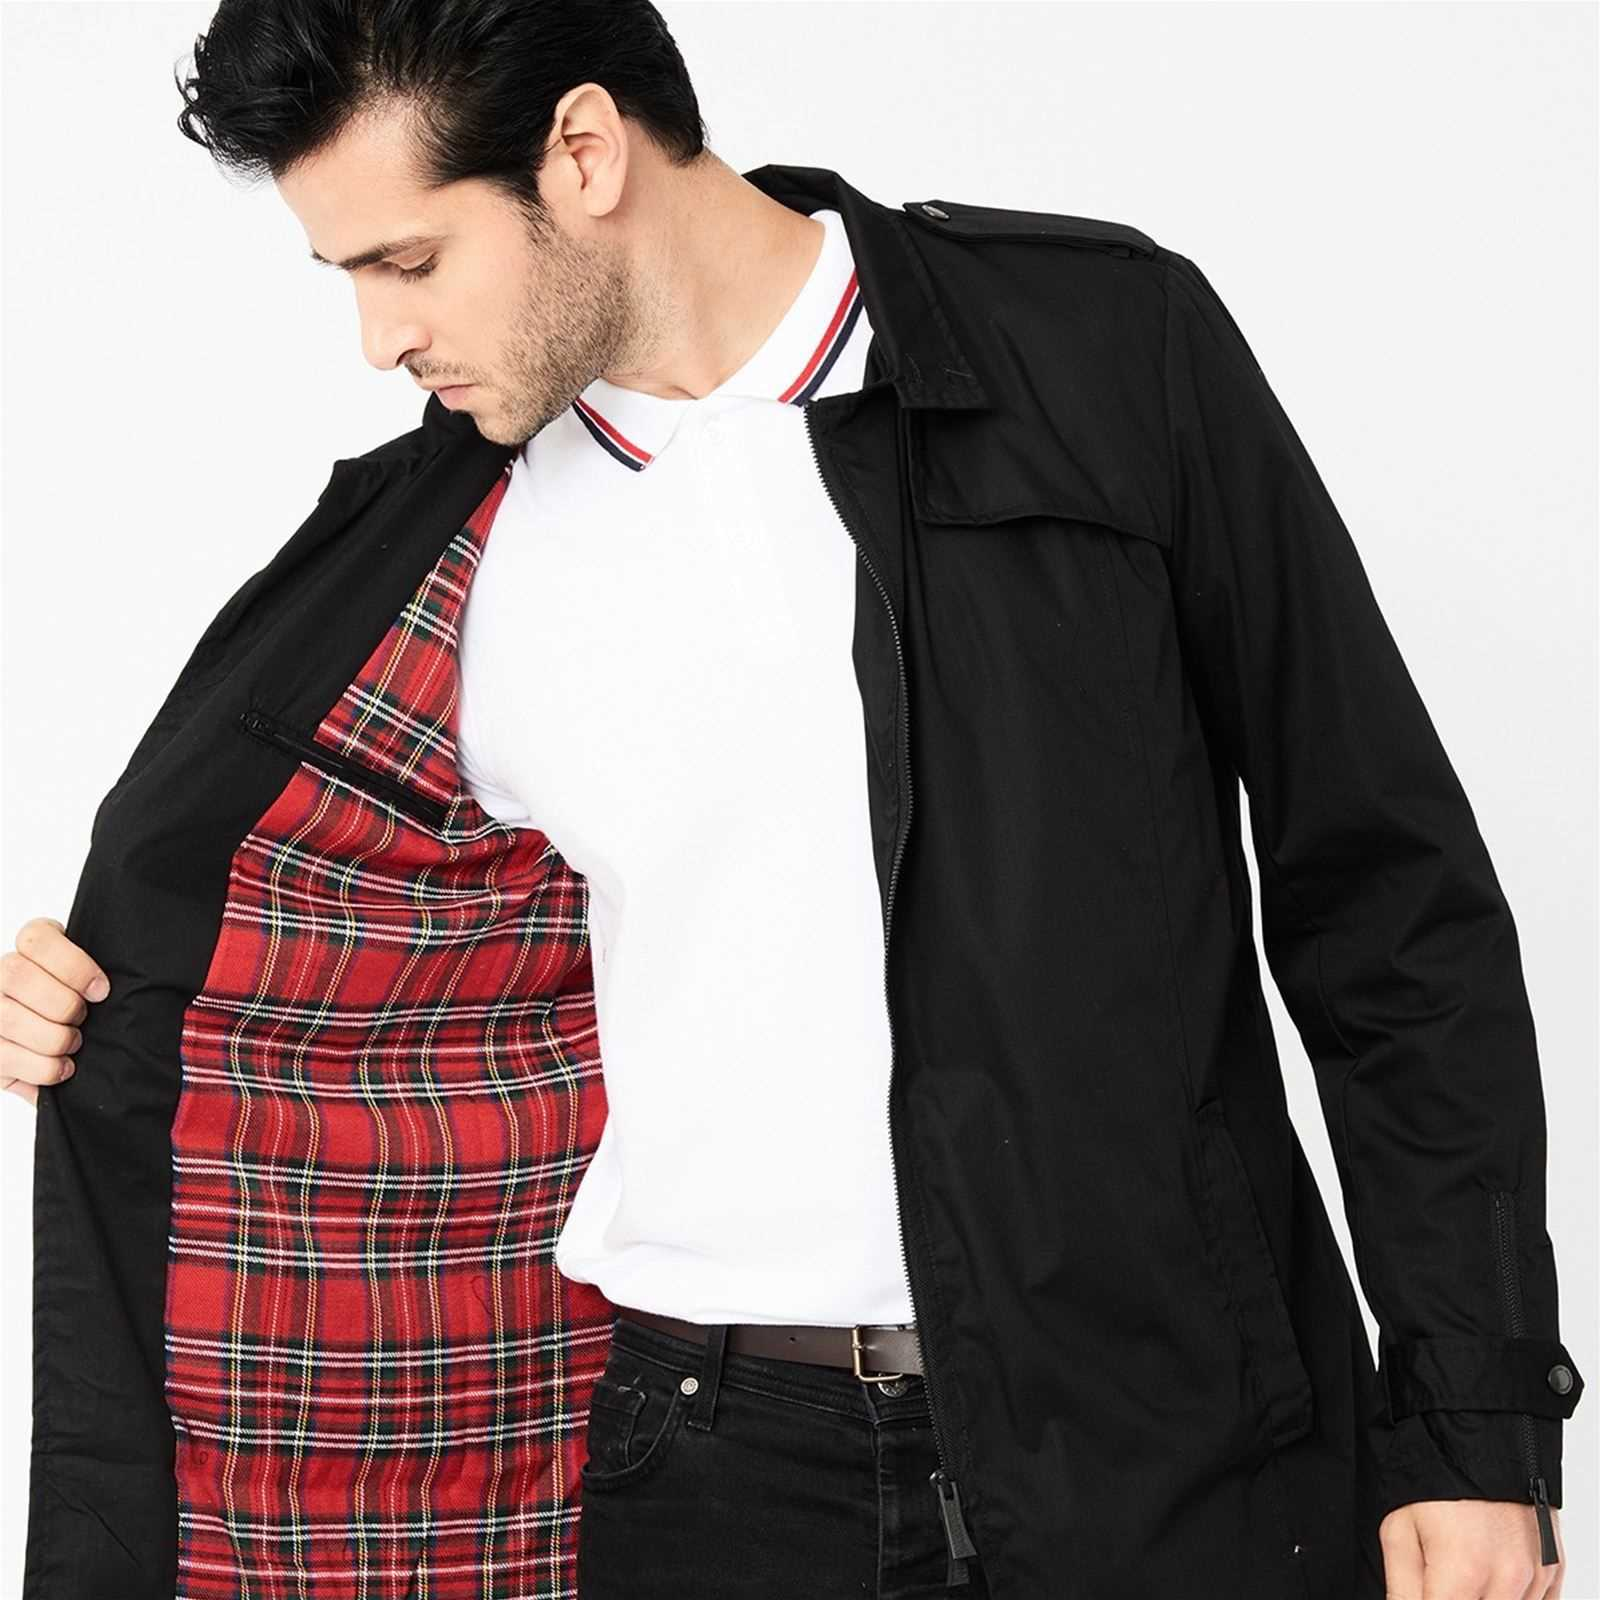 Doublure Harrington Tartan Harrington Trench Noir Trench FqwYBg